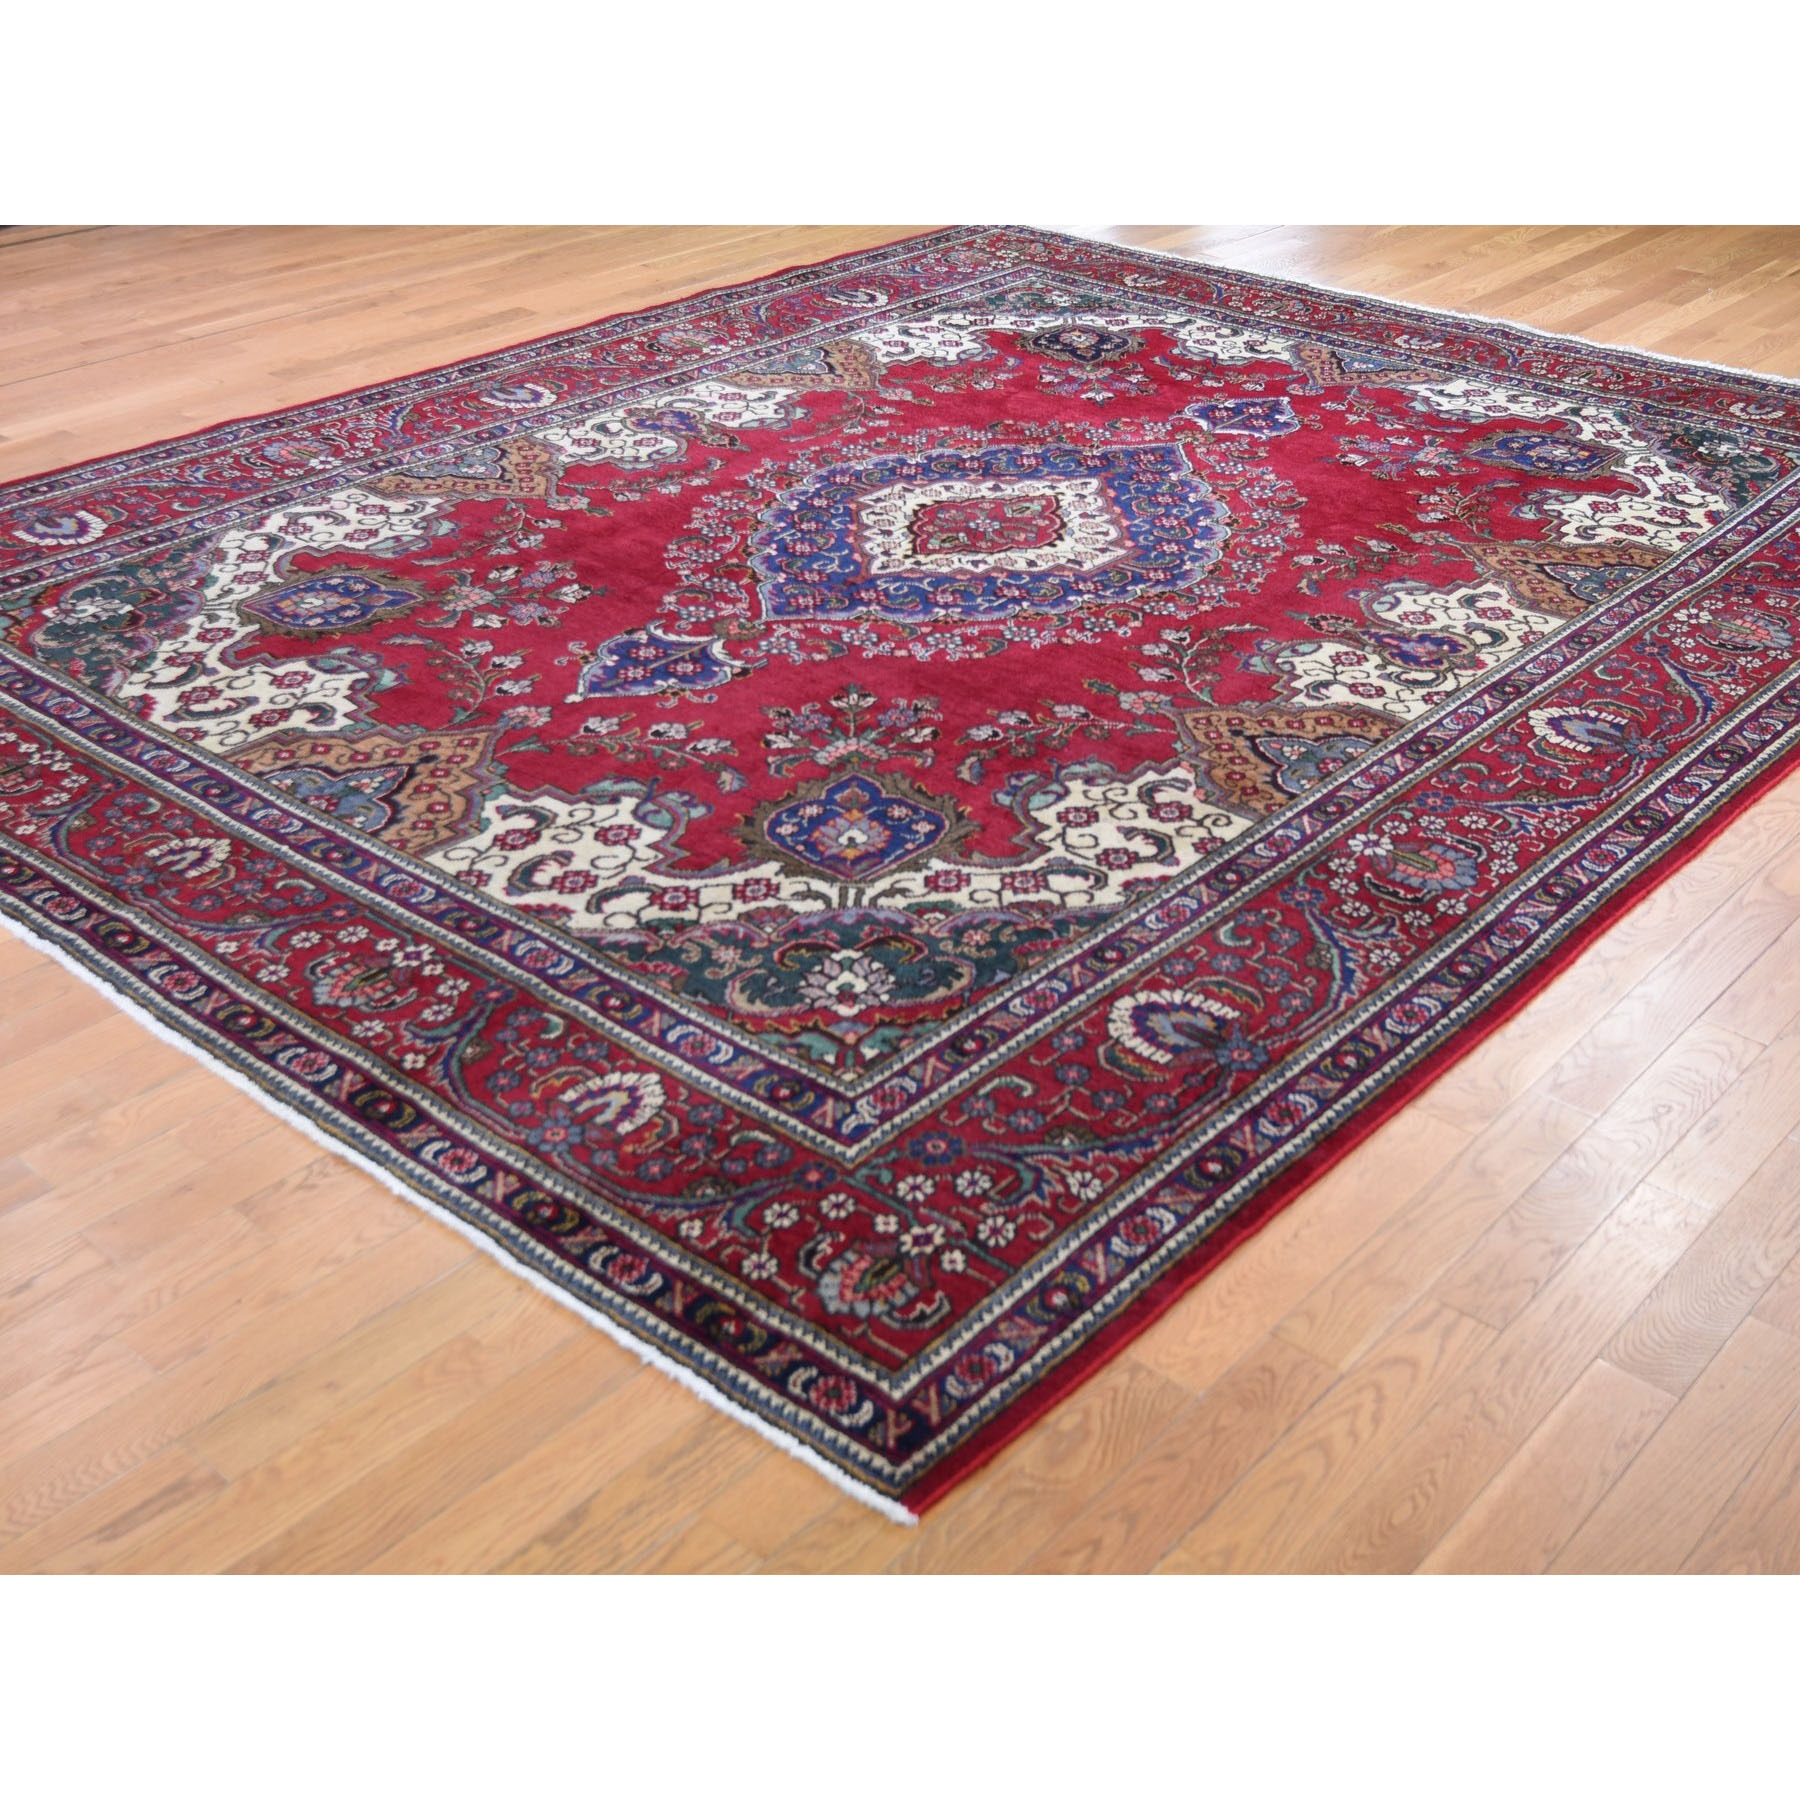 "9'10""x12'2"" Red Vintage Persian Tabriz Some Wear Pure Wool Hand Knotted Oriental Rug"